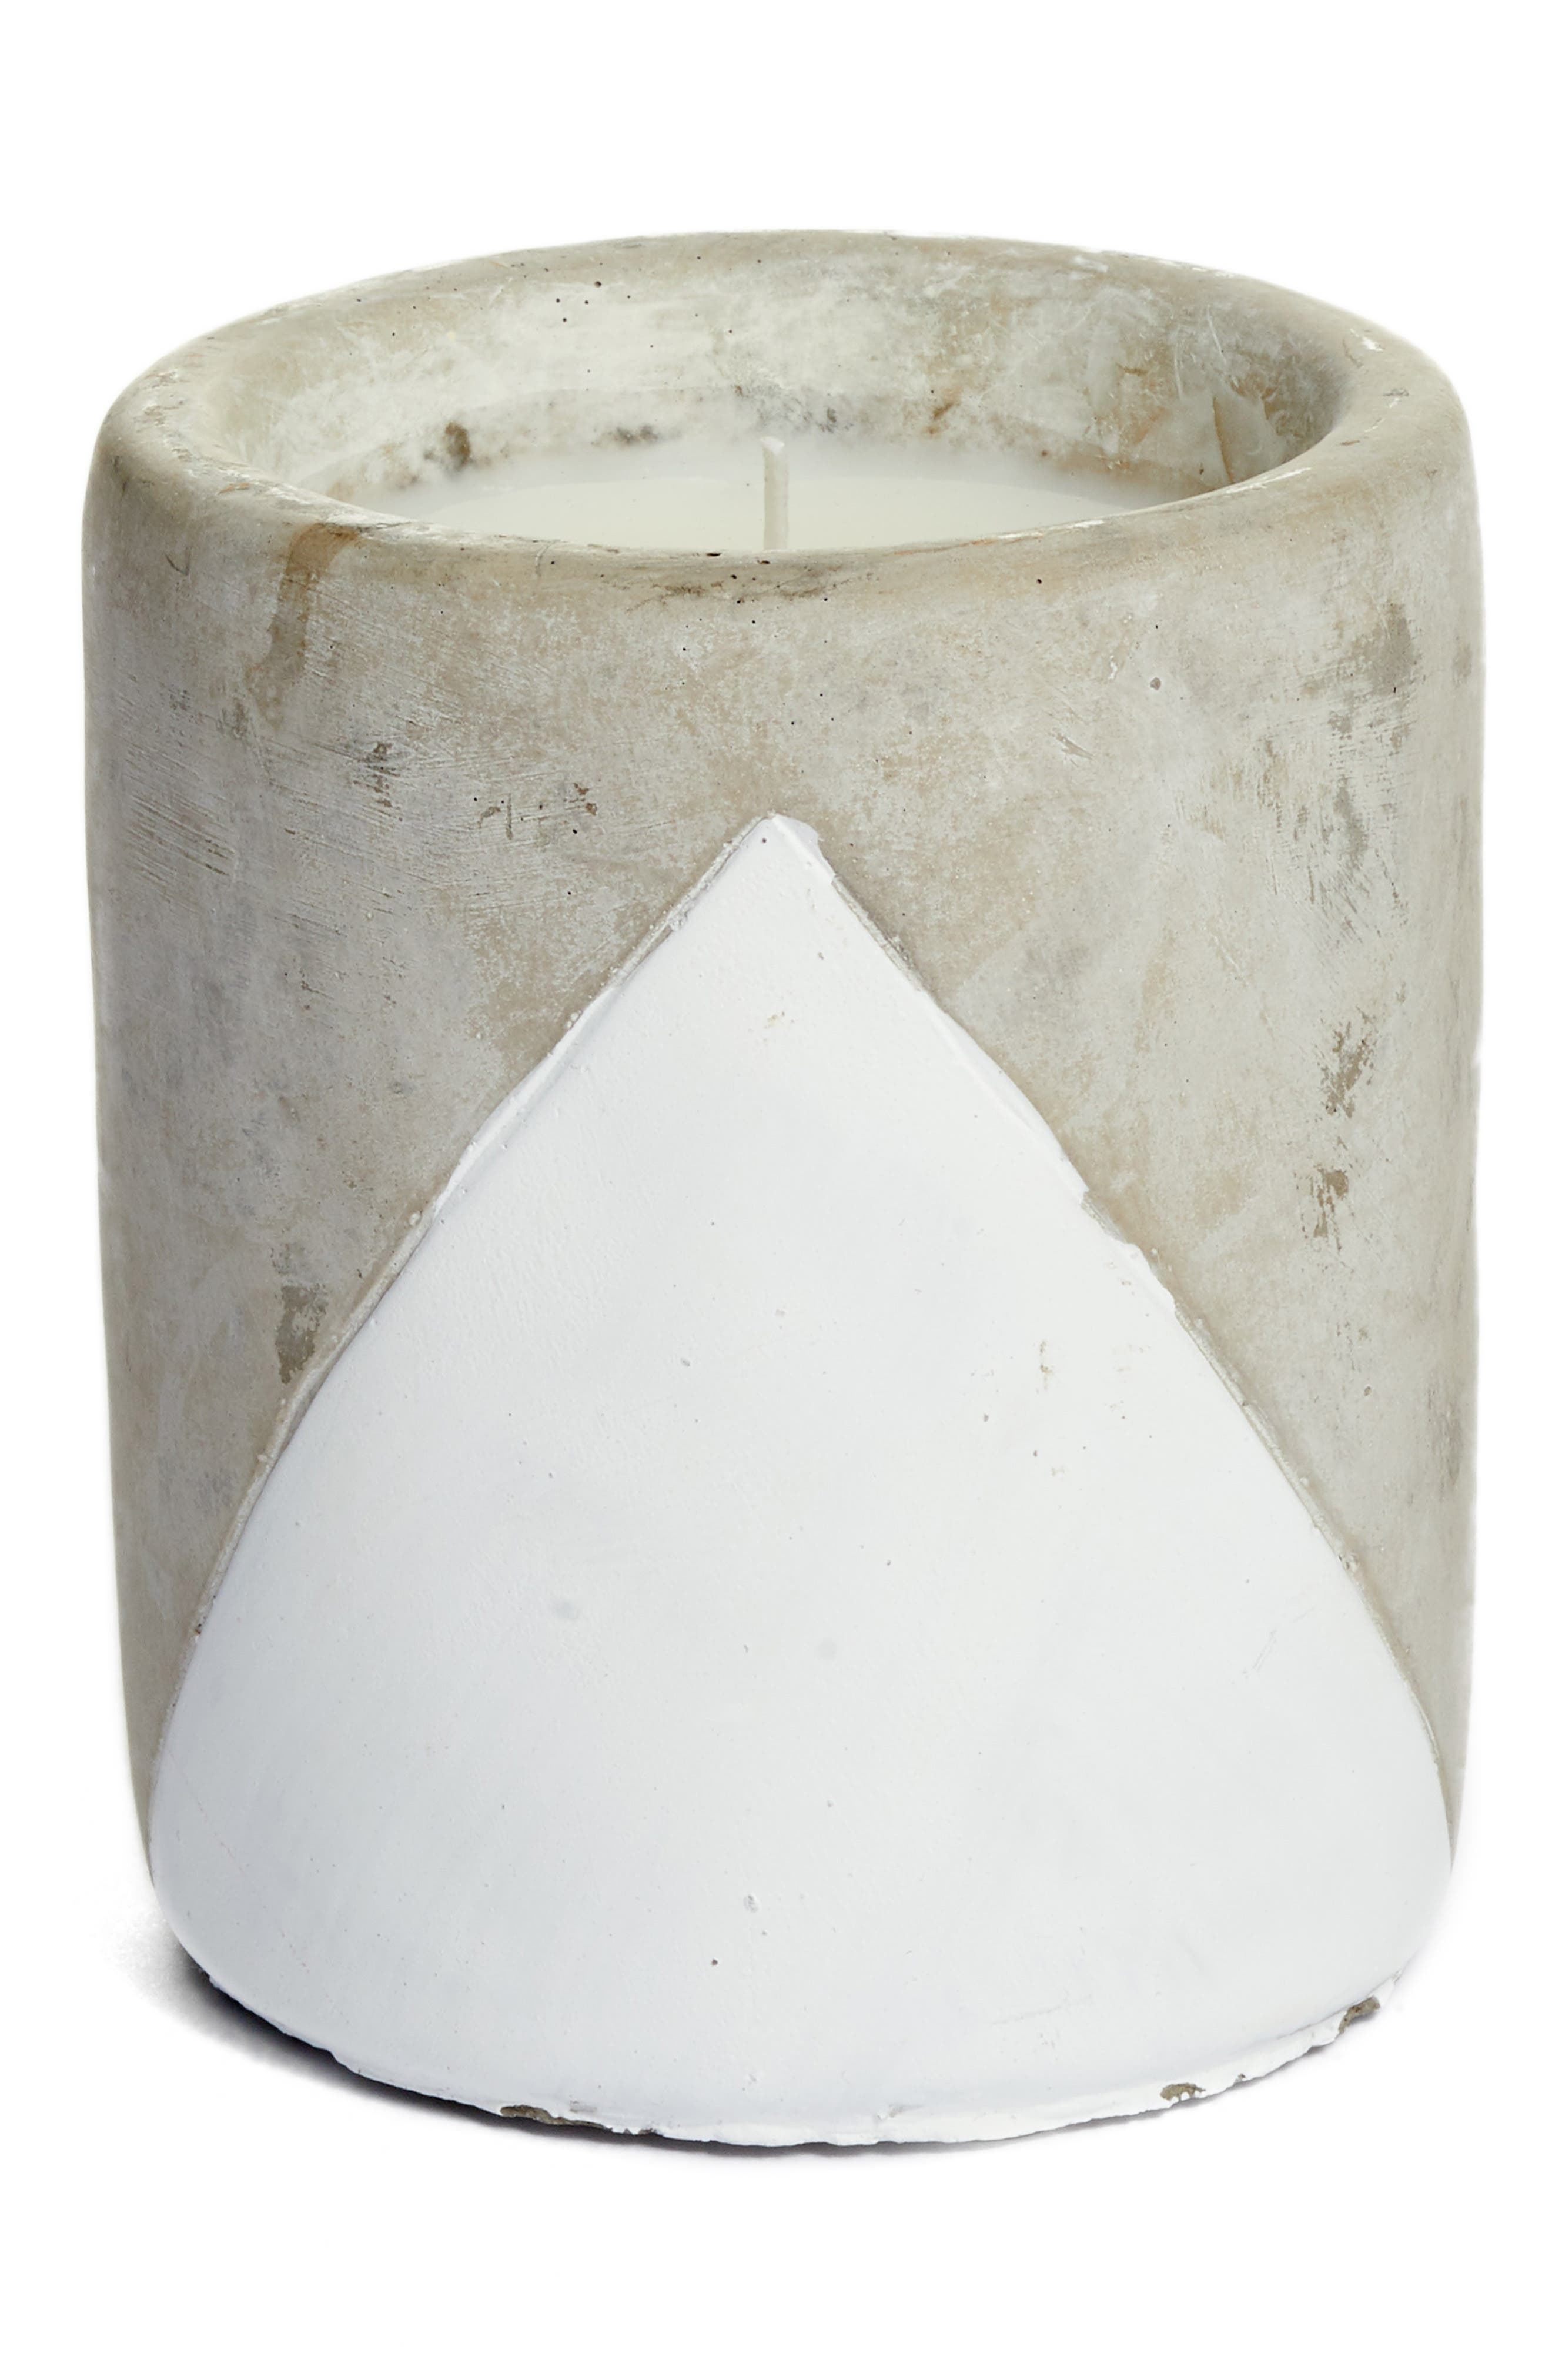 Main Image - Paddywax Urban Concrete Soy Wax Candle